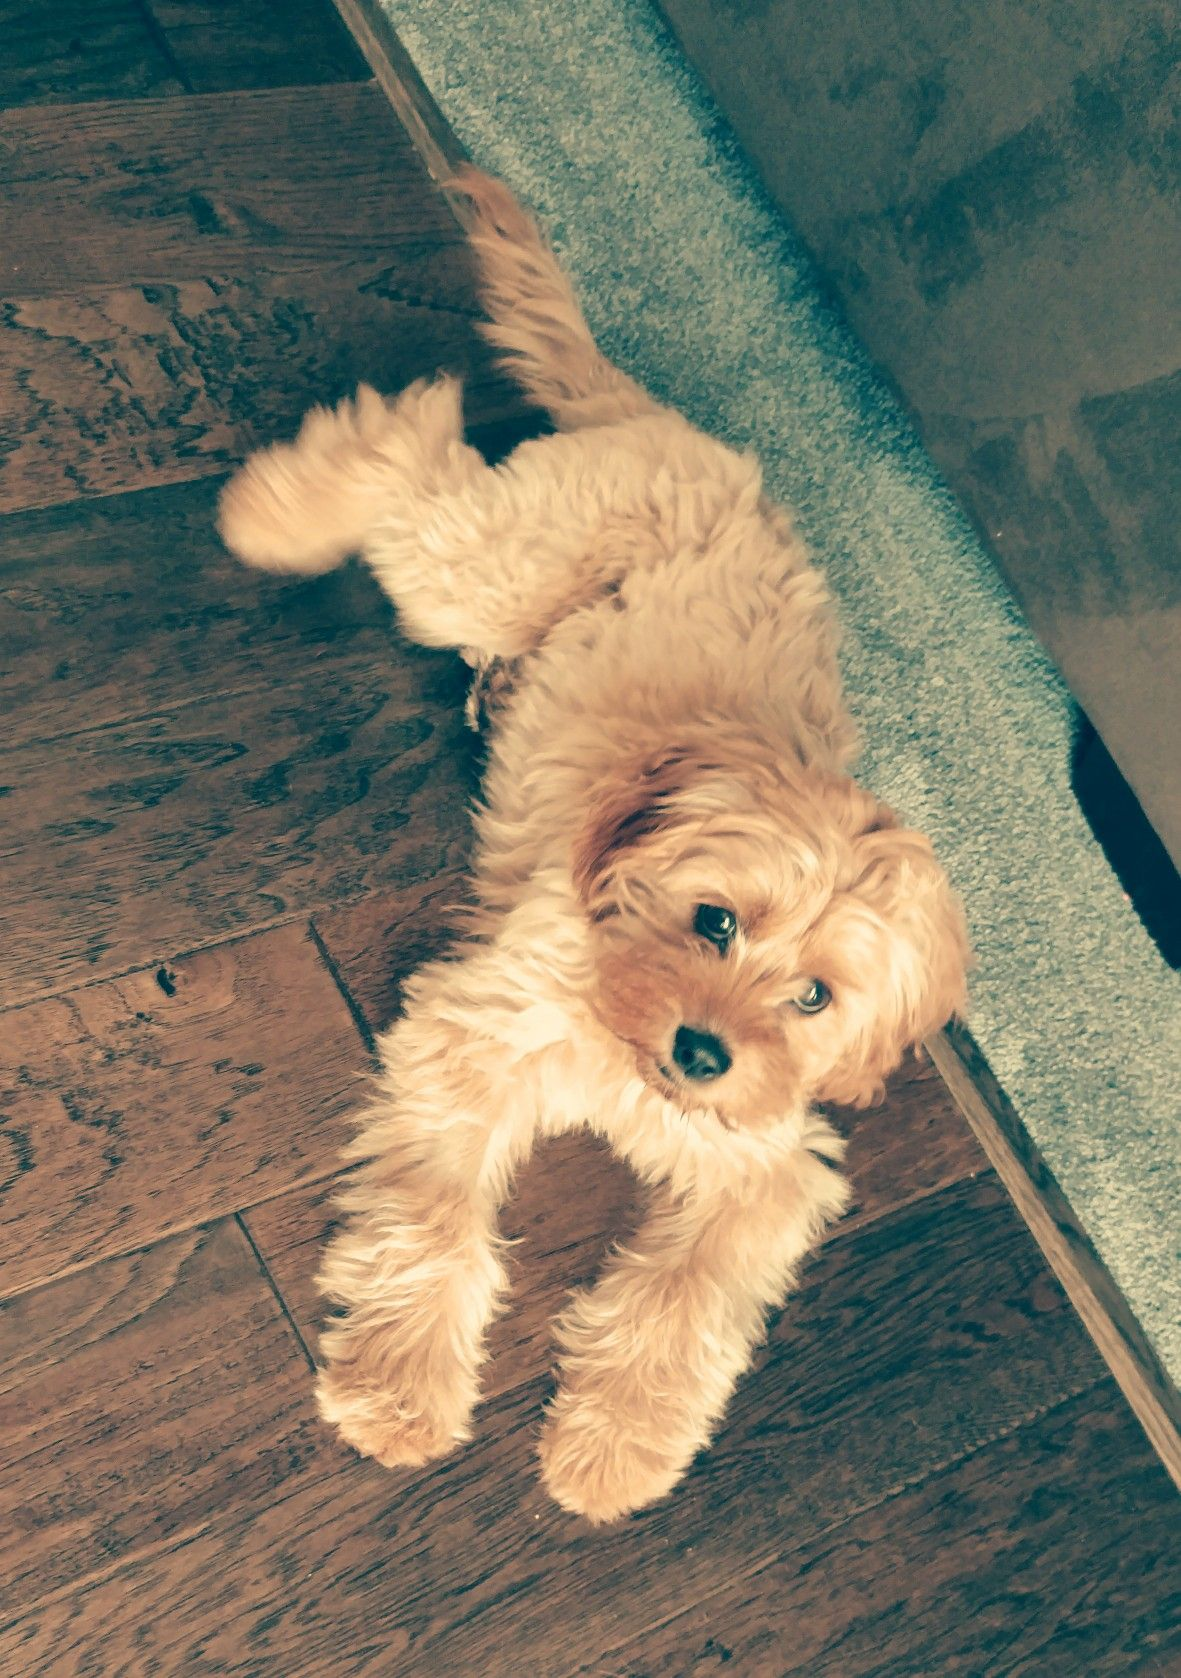 5 Month Old Cavapoo Cavadoodle Cavoodle Named Fawn Animals Friends Cute Dogs Cavadoodle